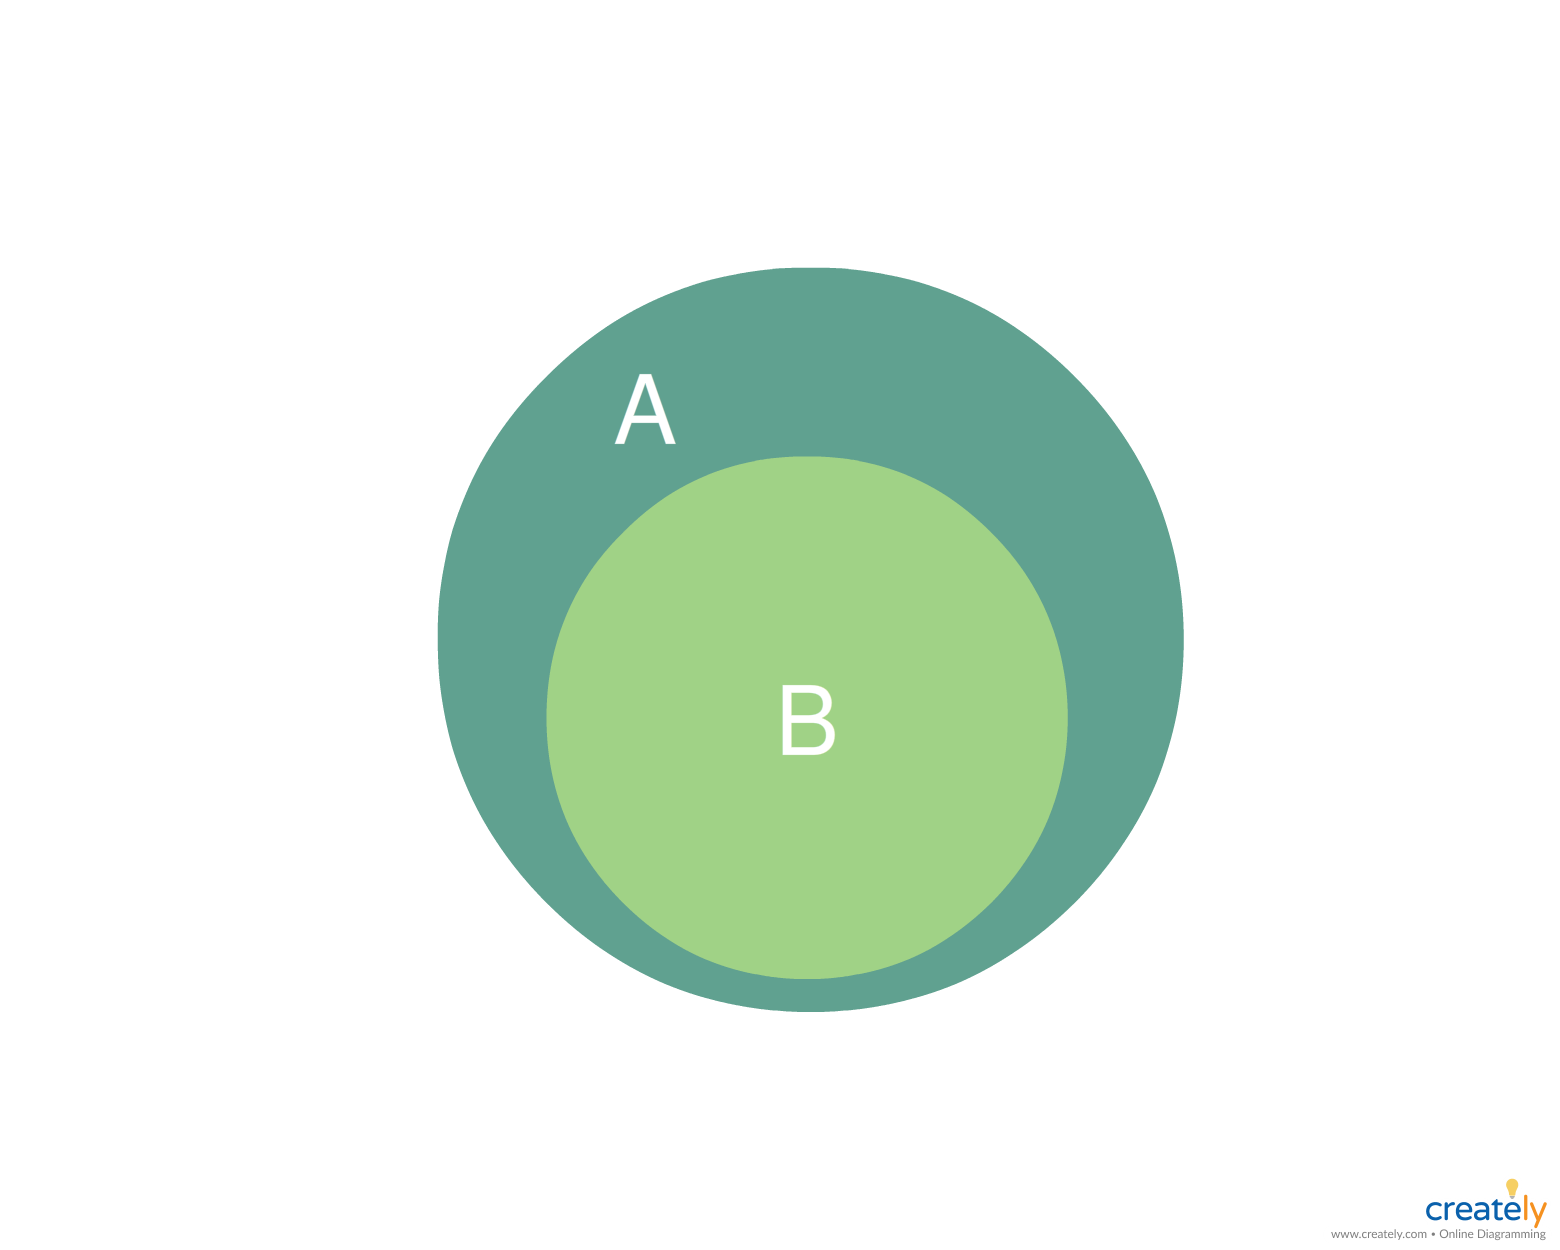 hight resolution of venn diagram example showing a is a proper subset of b and conversely b is a proper super set of a you can use this as a template by clicking on the